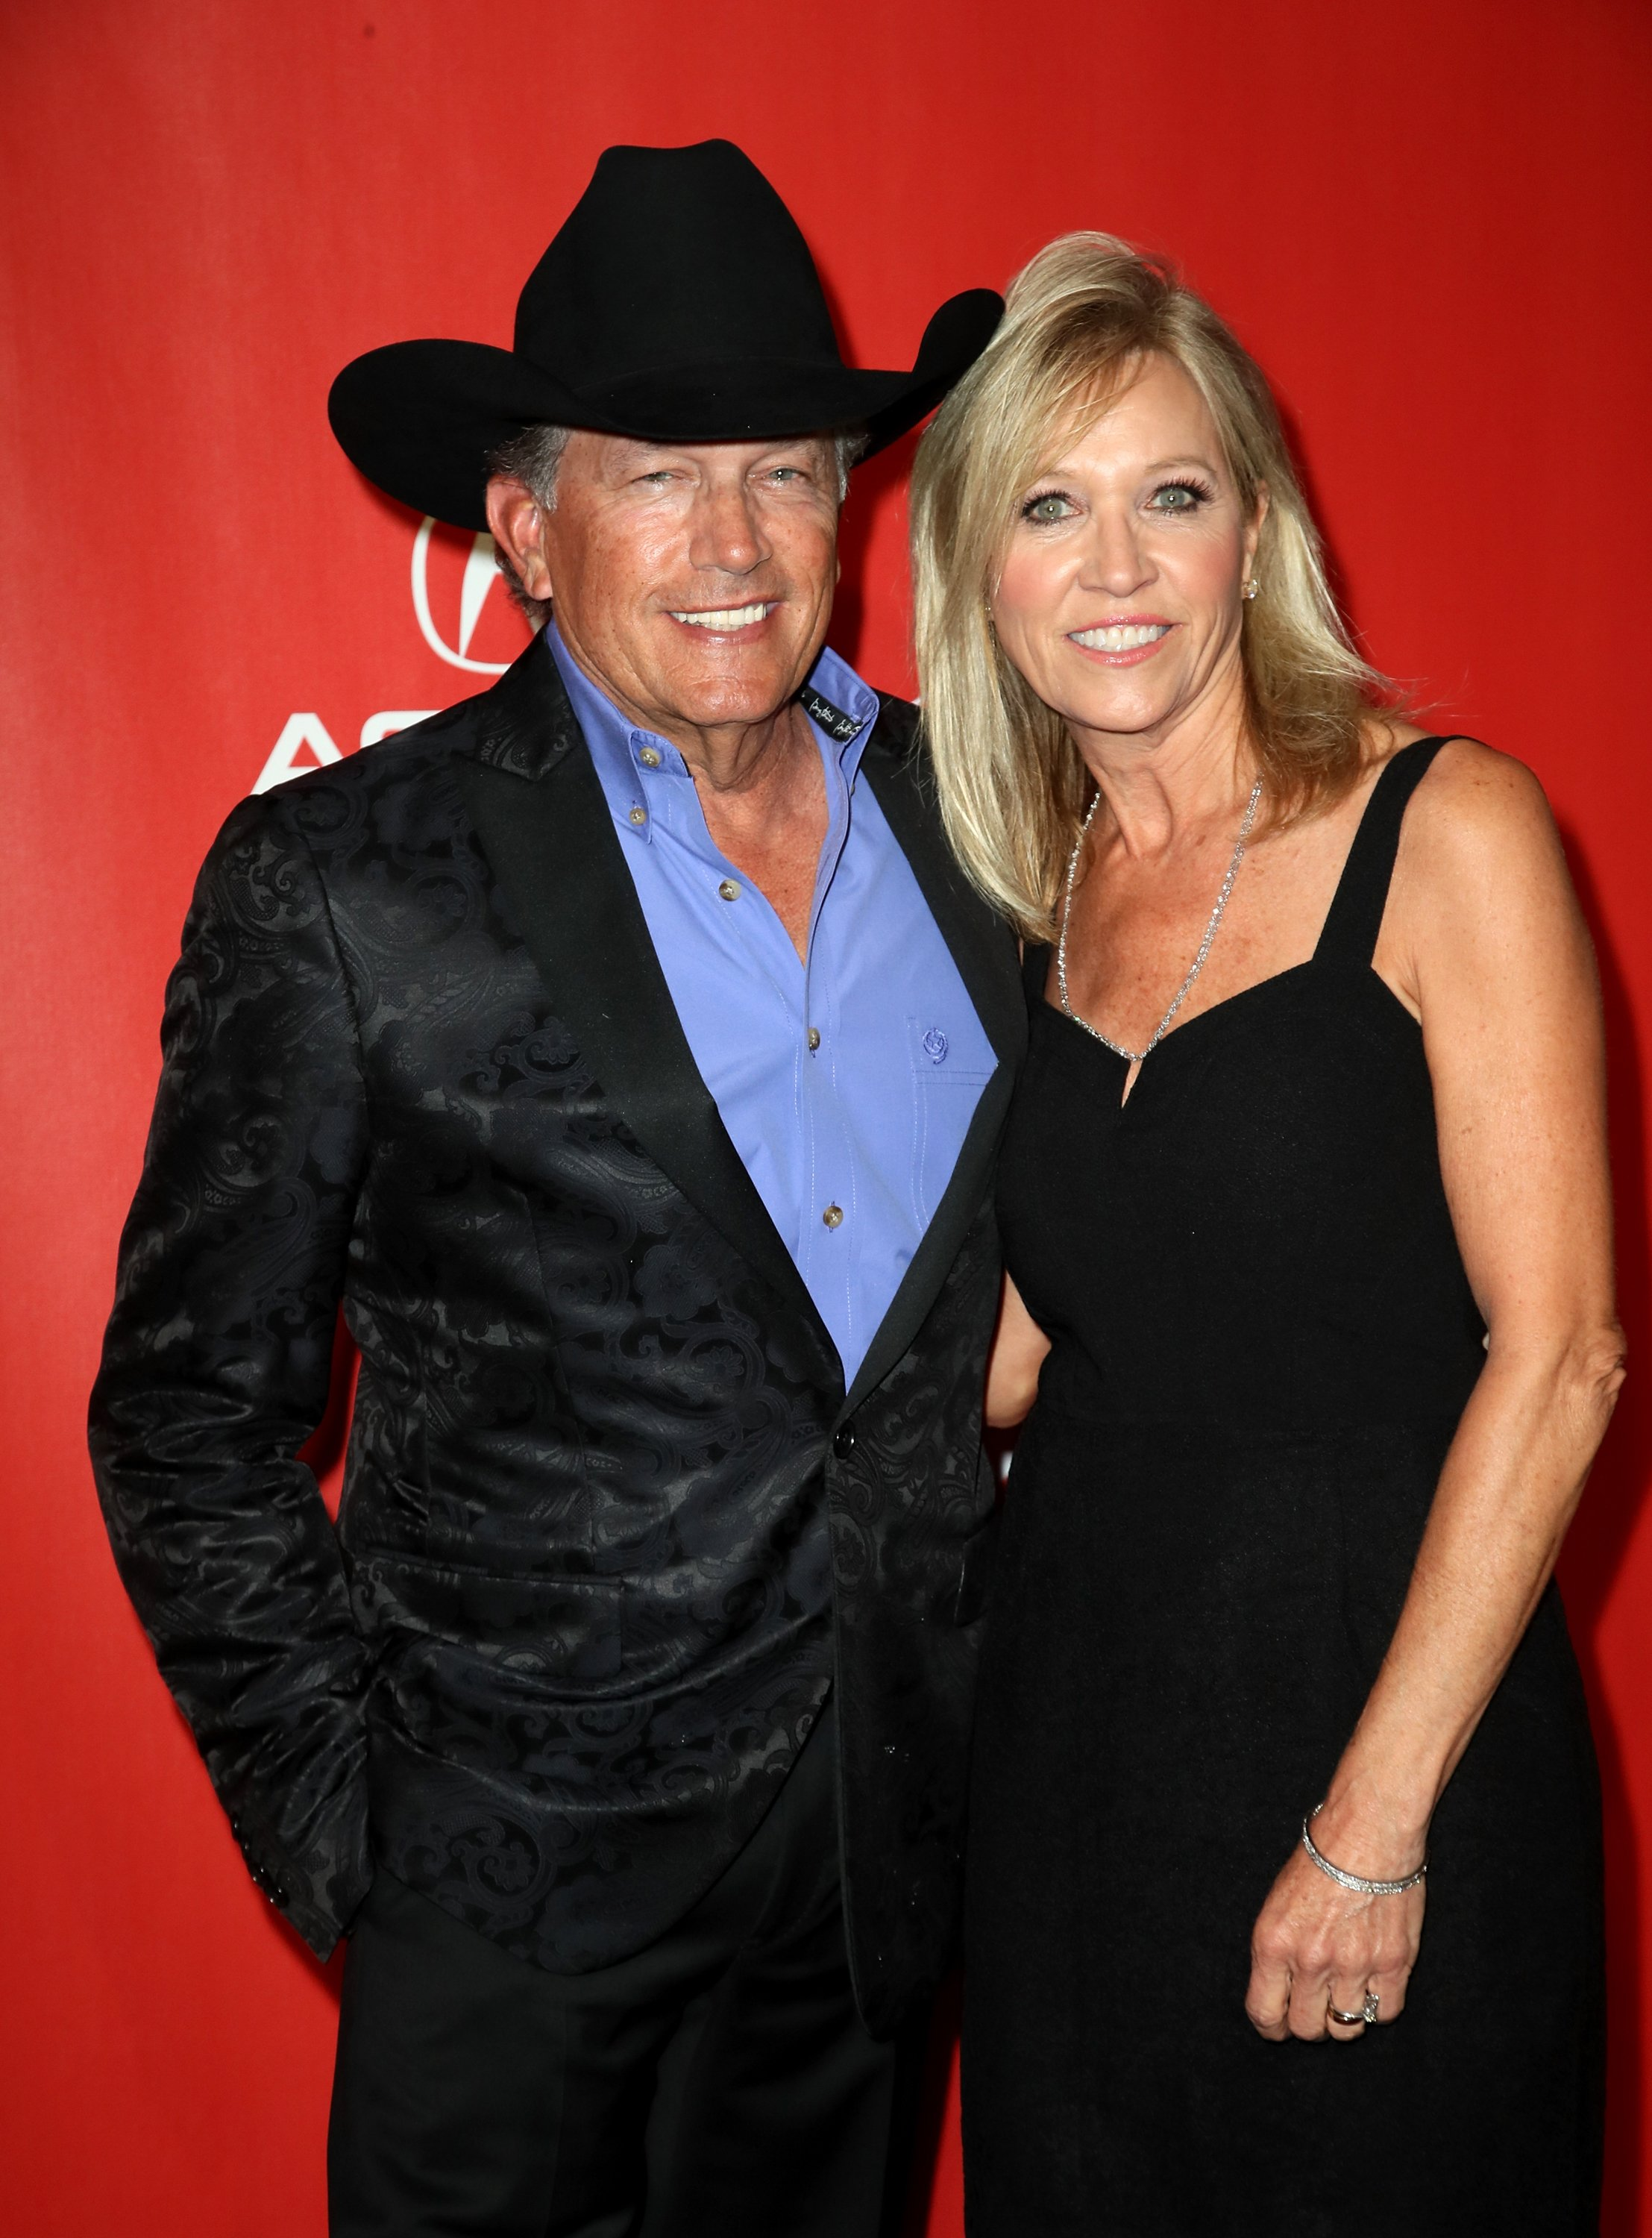 George Strait and Norma Strait attend the 2017 MusiCares Person of the Year honoring Tom Petty. | Source: Getty Images